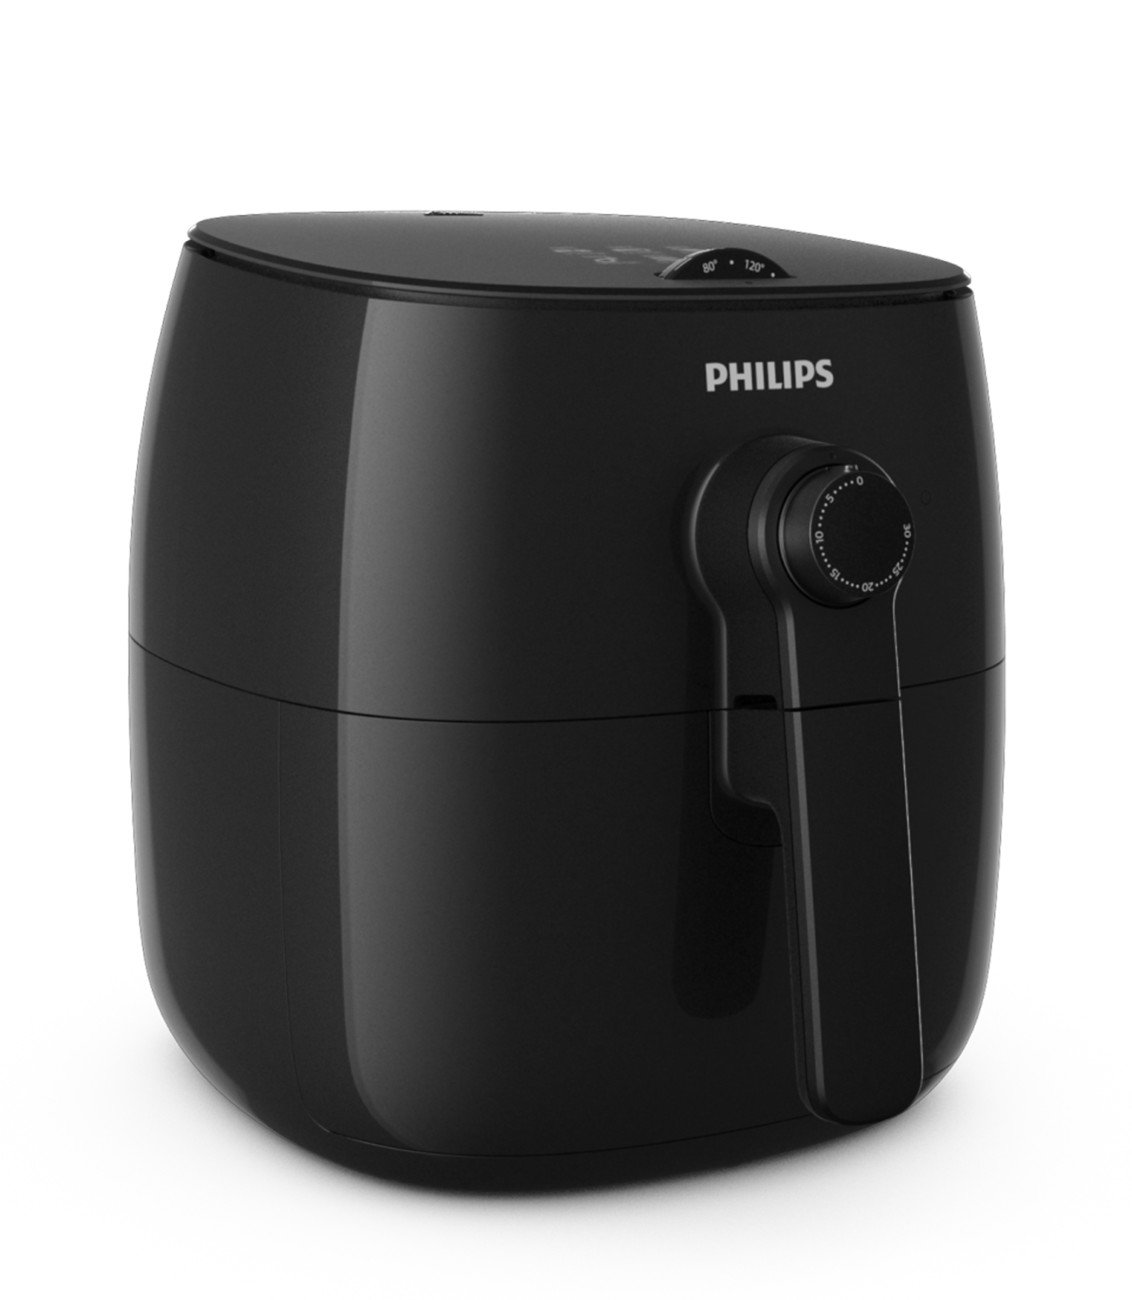 Philips HD9621/96 Viva Turbostar Airfryer (1.8lb/2.75qt), Black